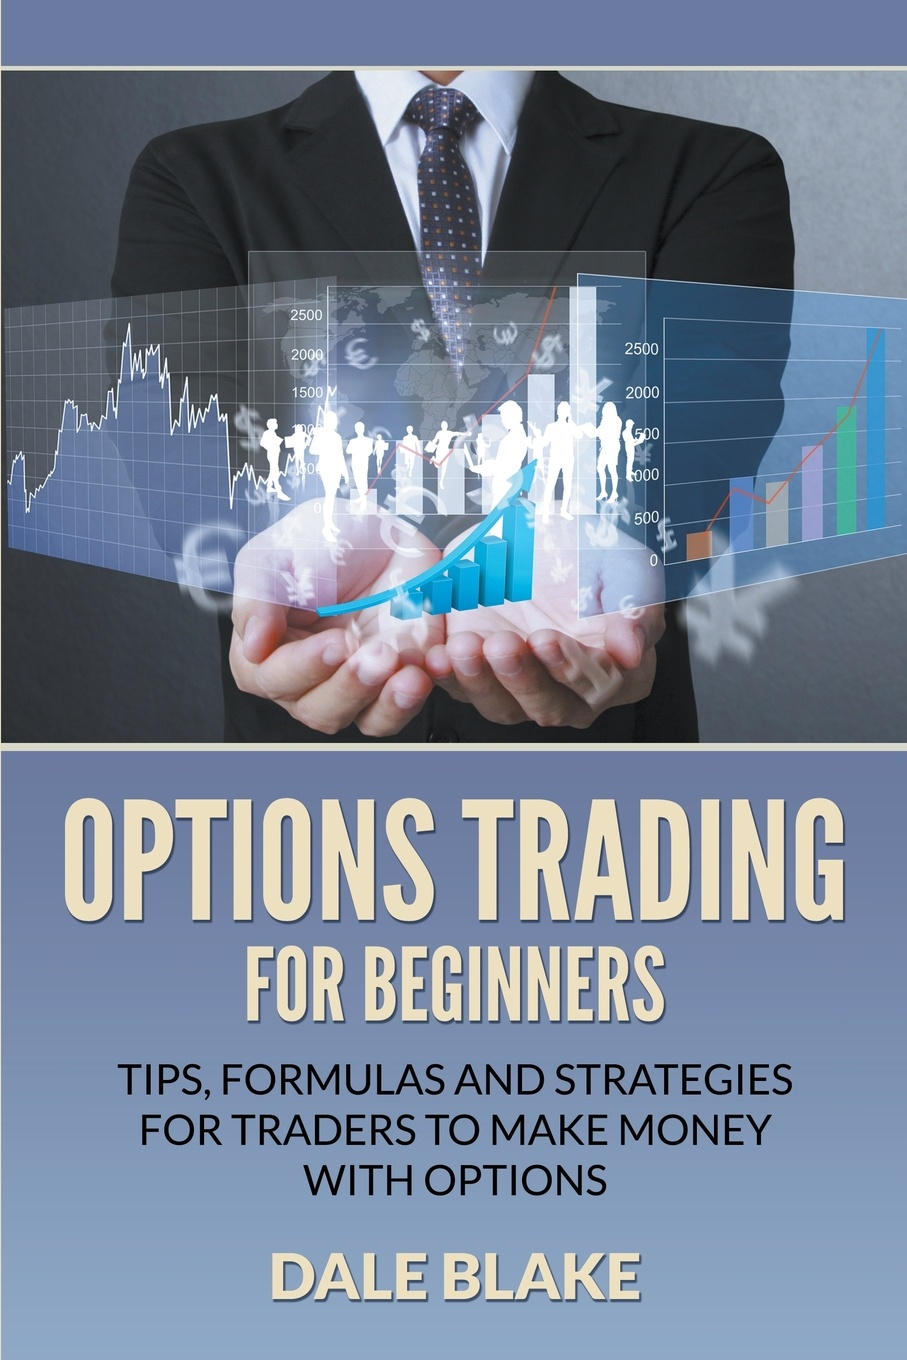 Options Trading For Beginners. Tips, Formulas and Strategies For Traders to Make Money with Options